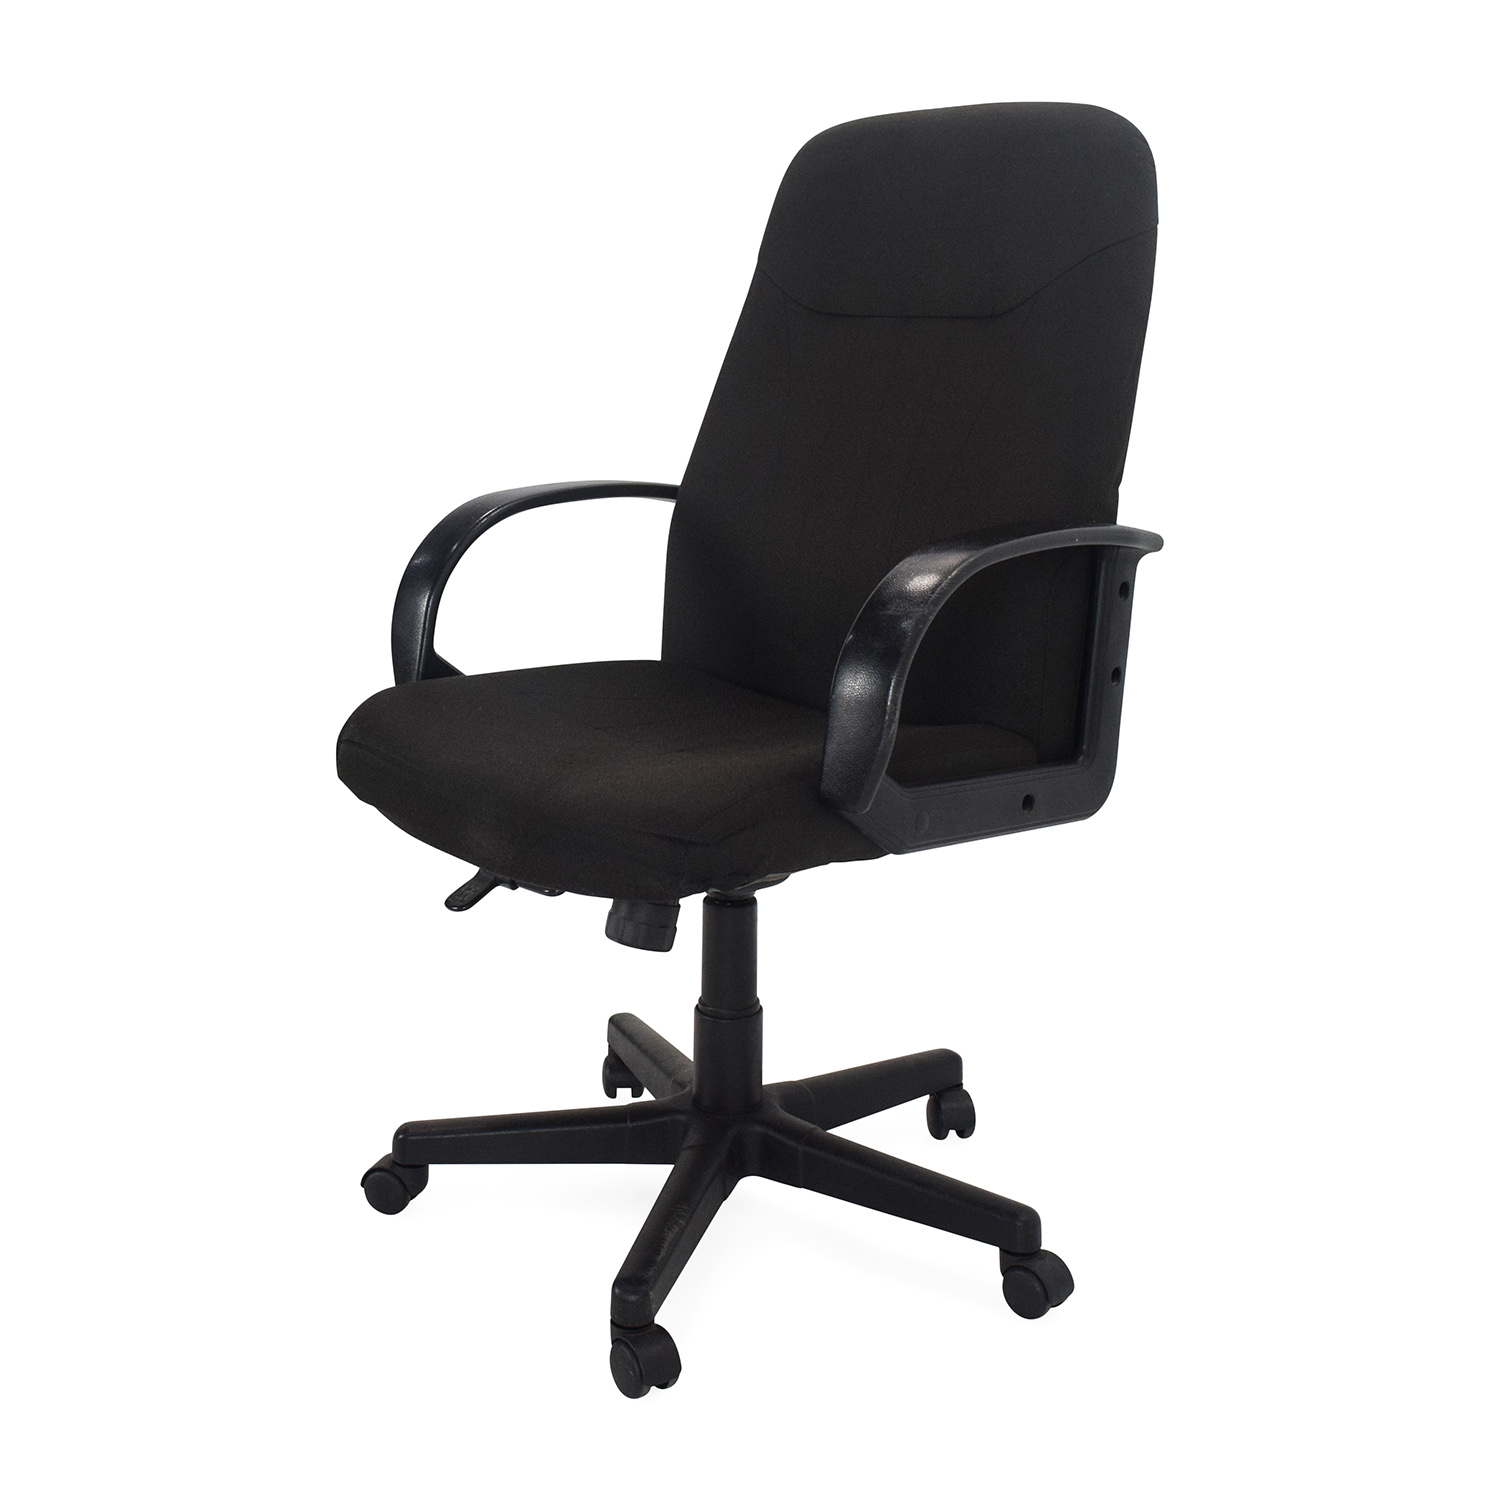 88 Off Comfortable Computer Chair Chairs